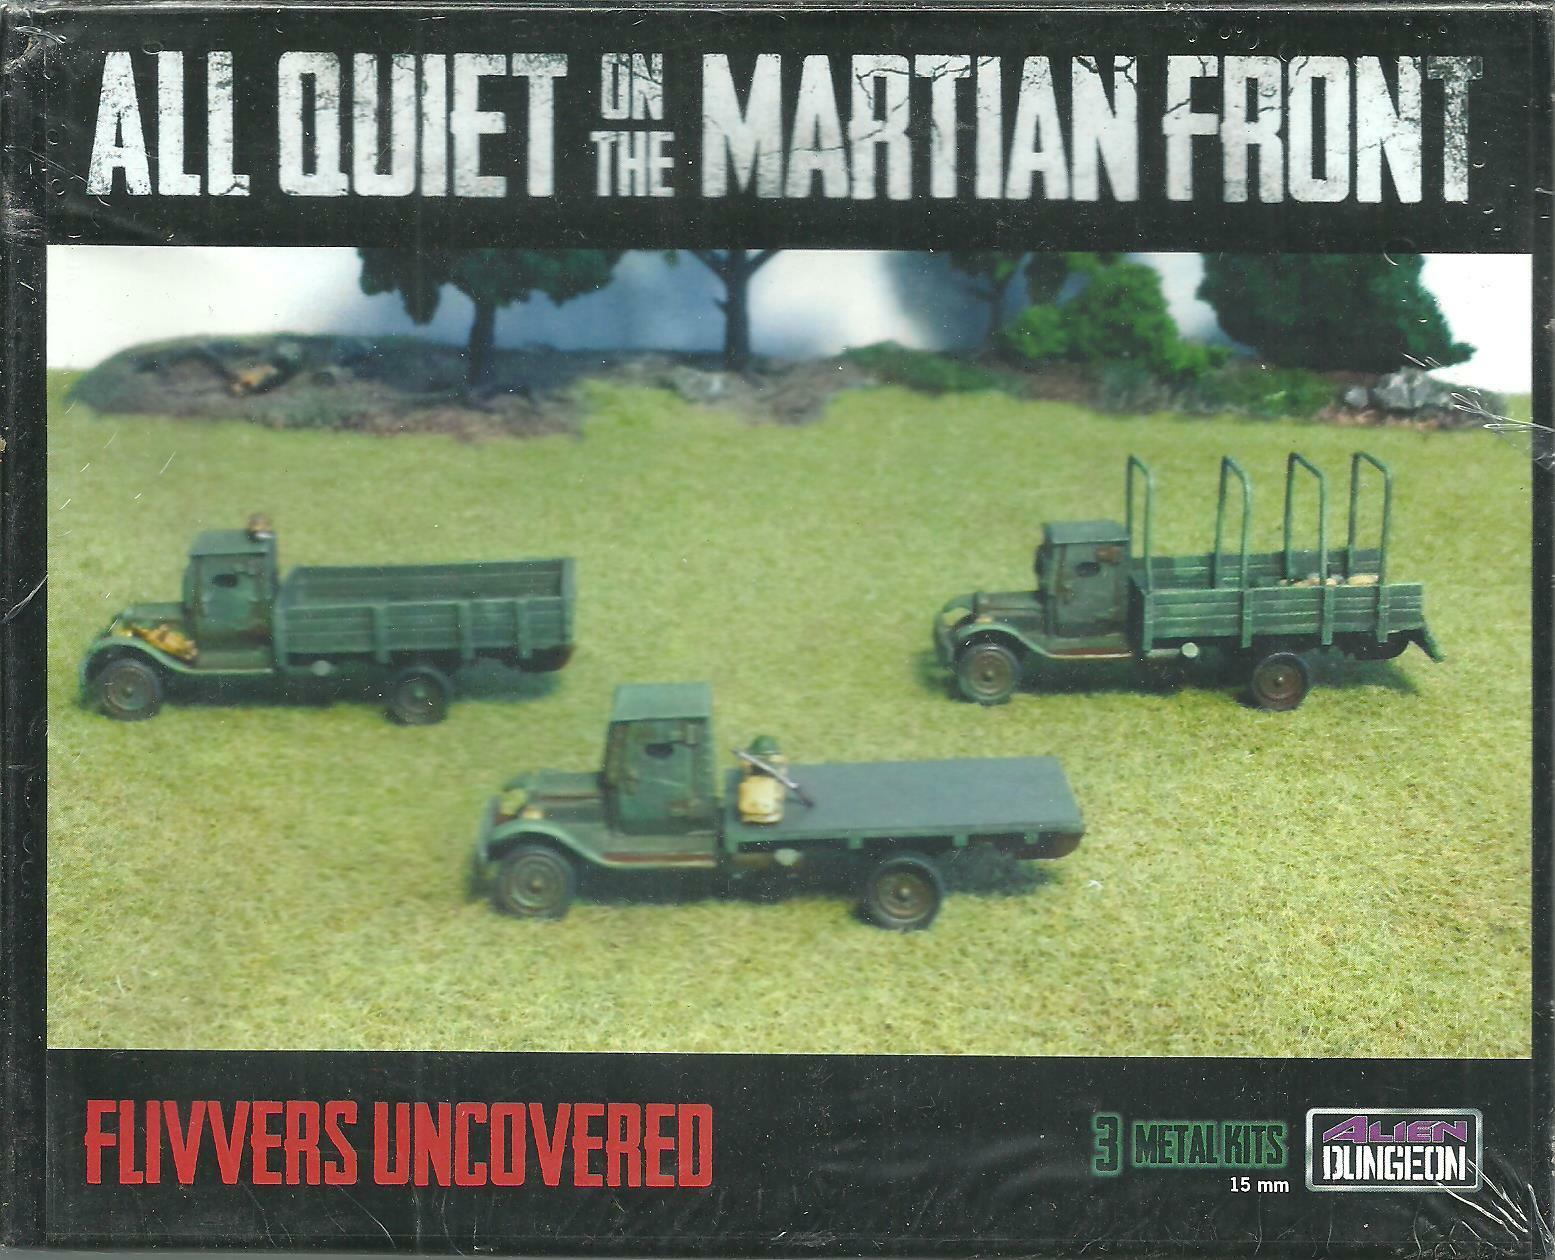 US027 Flivvers Uncovered for AQMF, Alien Dungeon, New, Sealed